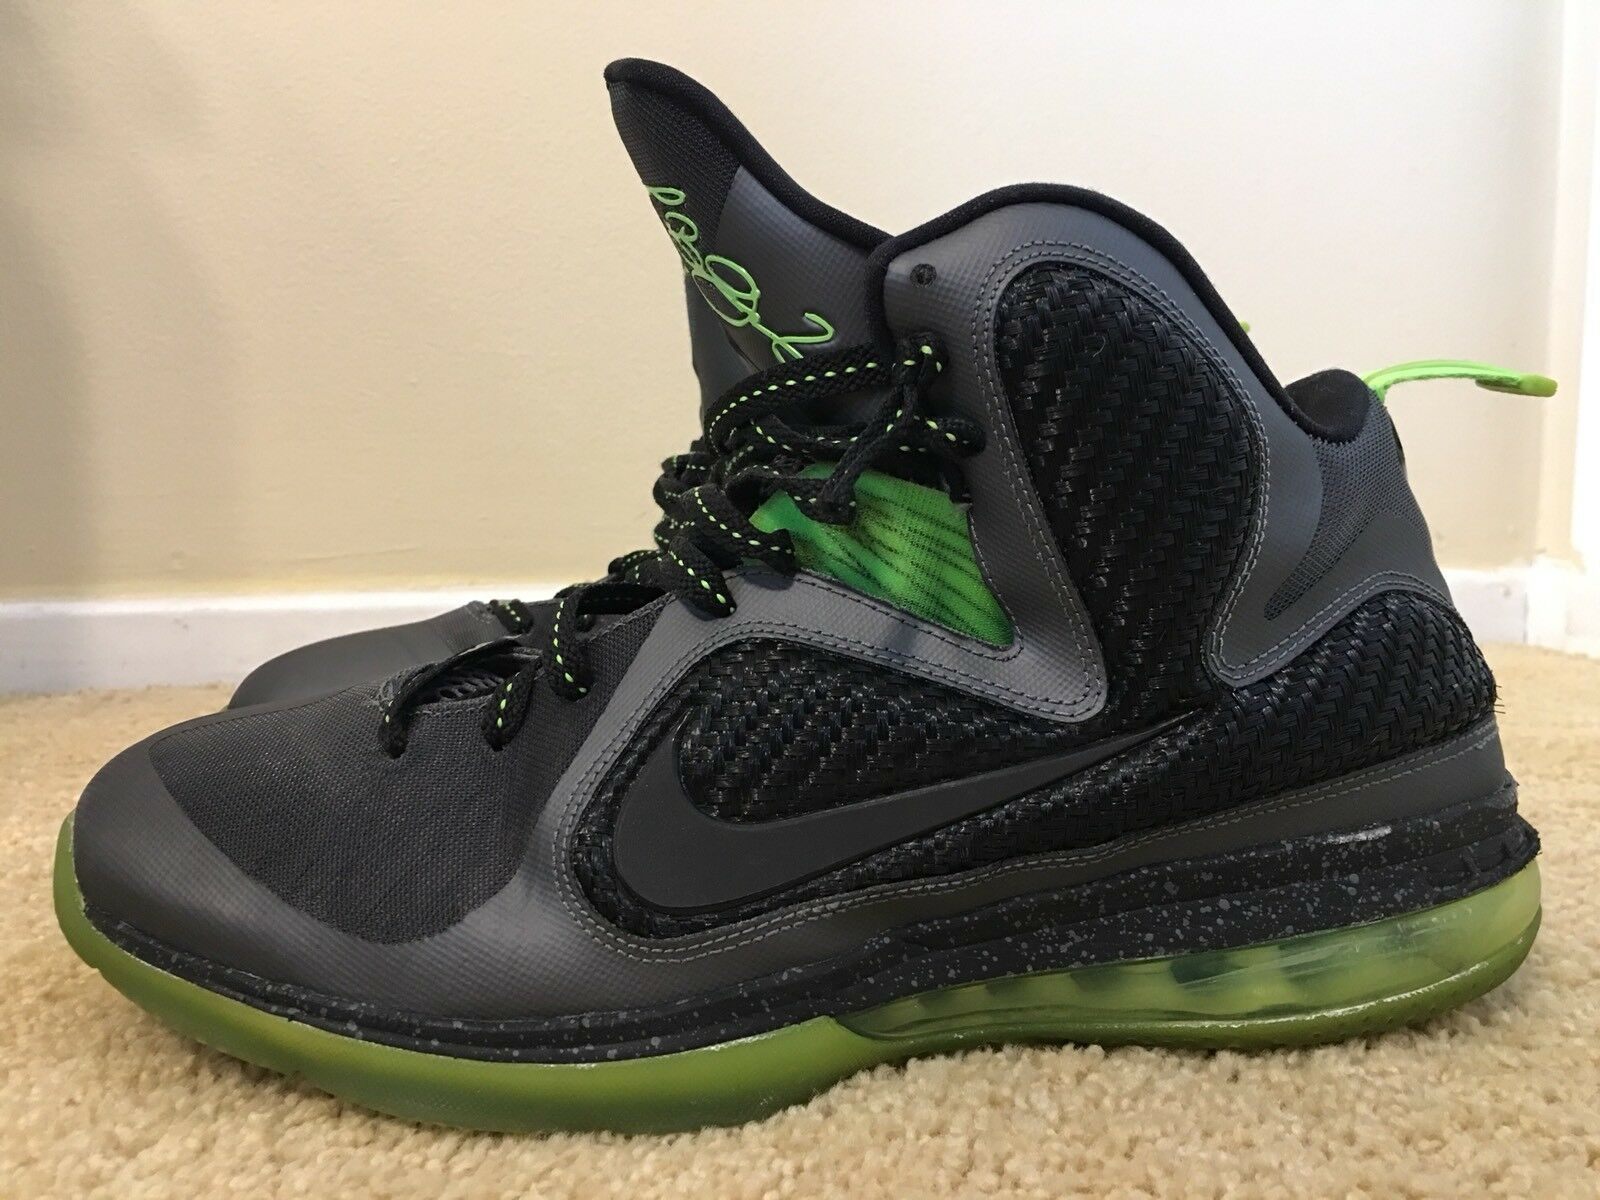 Nike Lebron 9, Noir /Green, Hommes Basketball Chaussures ,